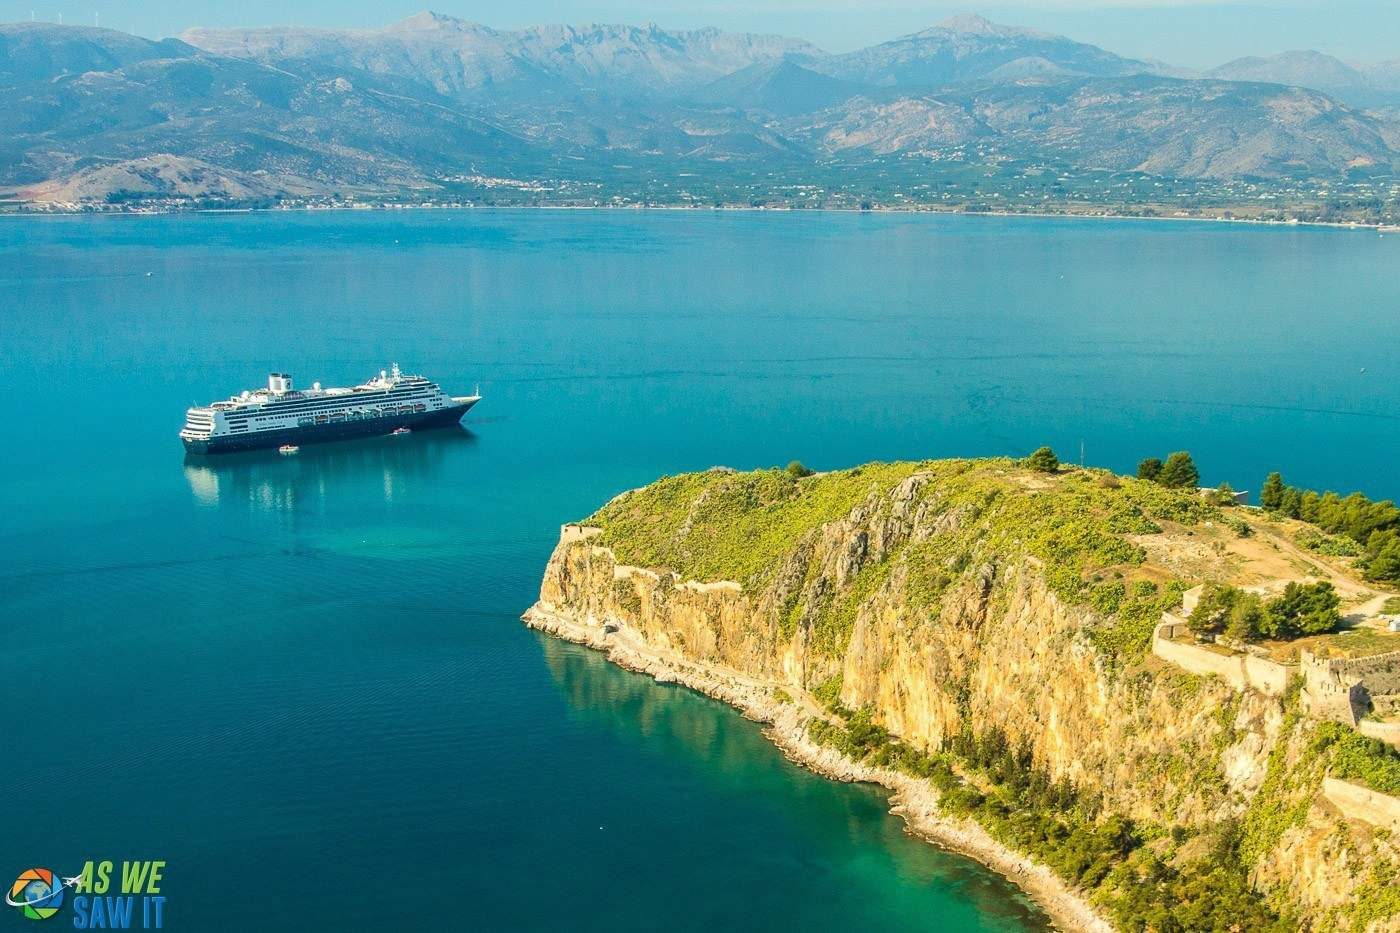 Our Holland America cruise ship in Nafplion, Greece